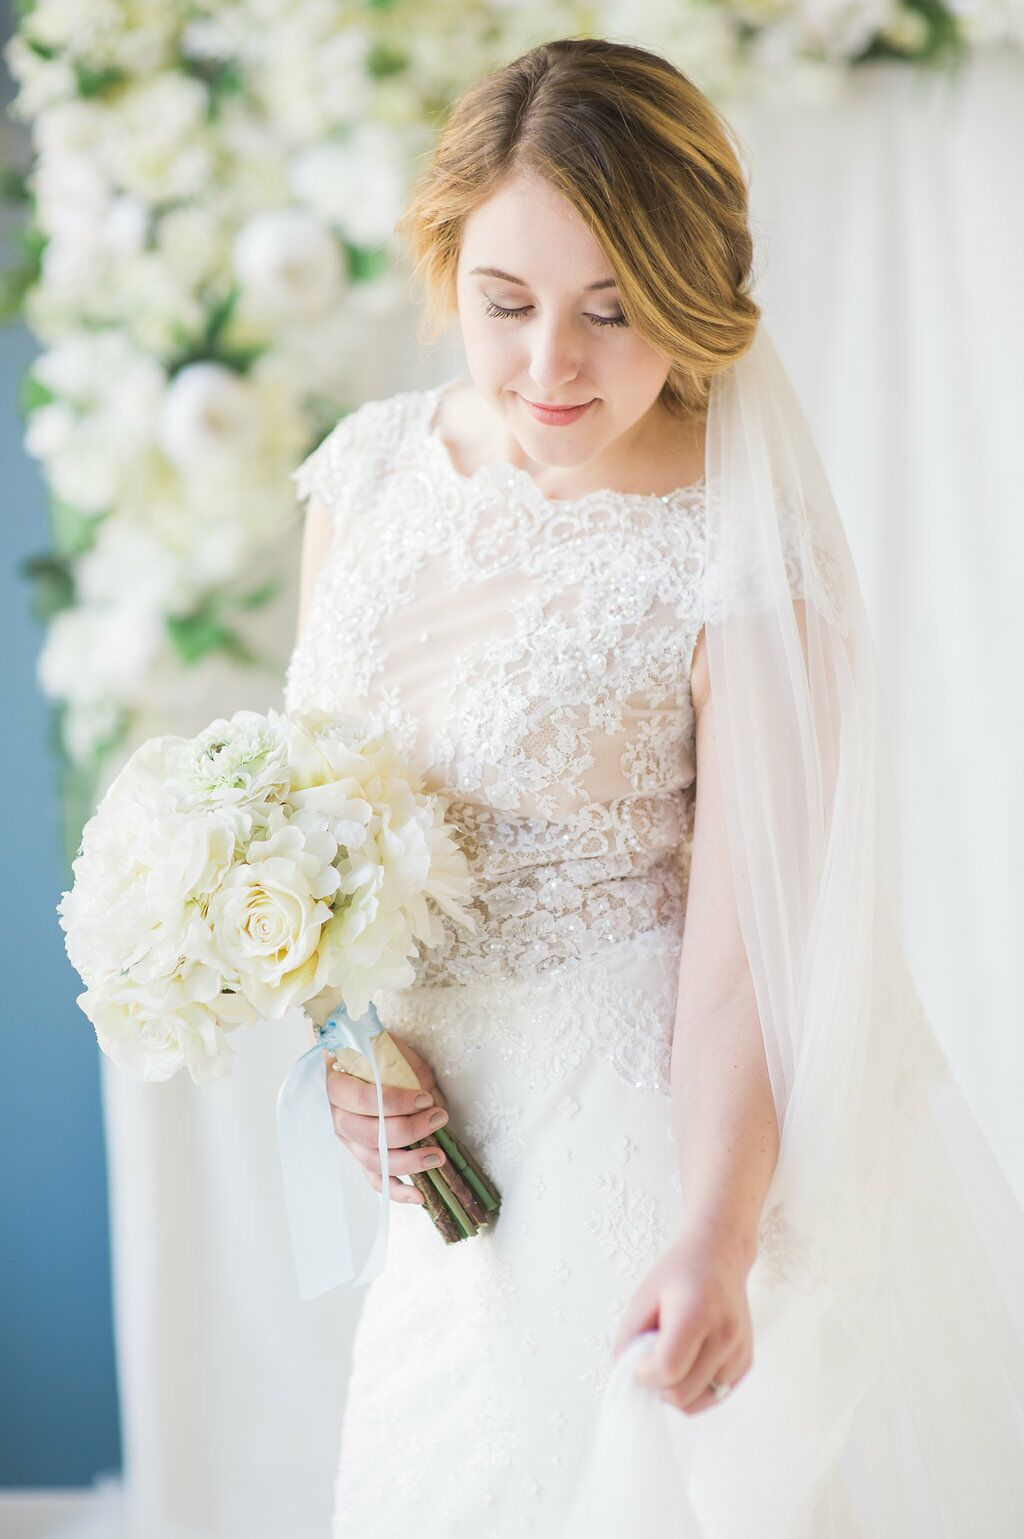 Bridal Salons in Grand Rapids, MI - The Knot